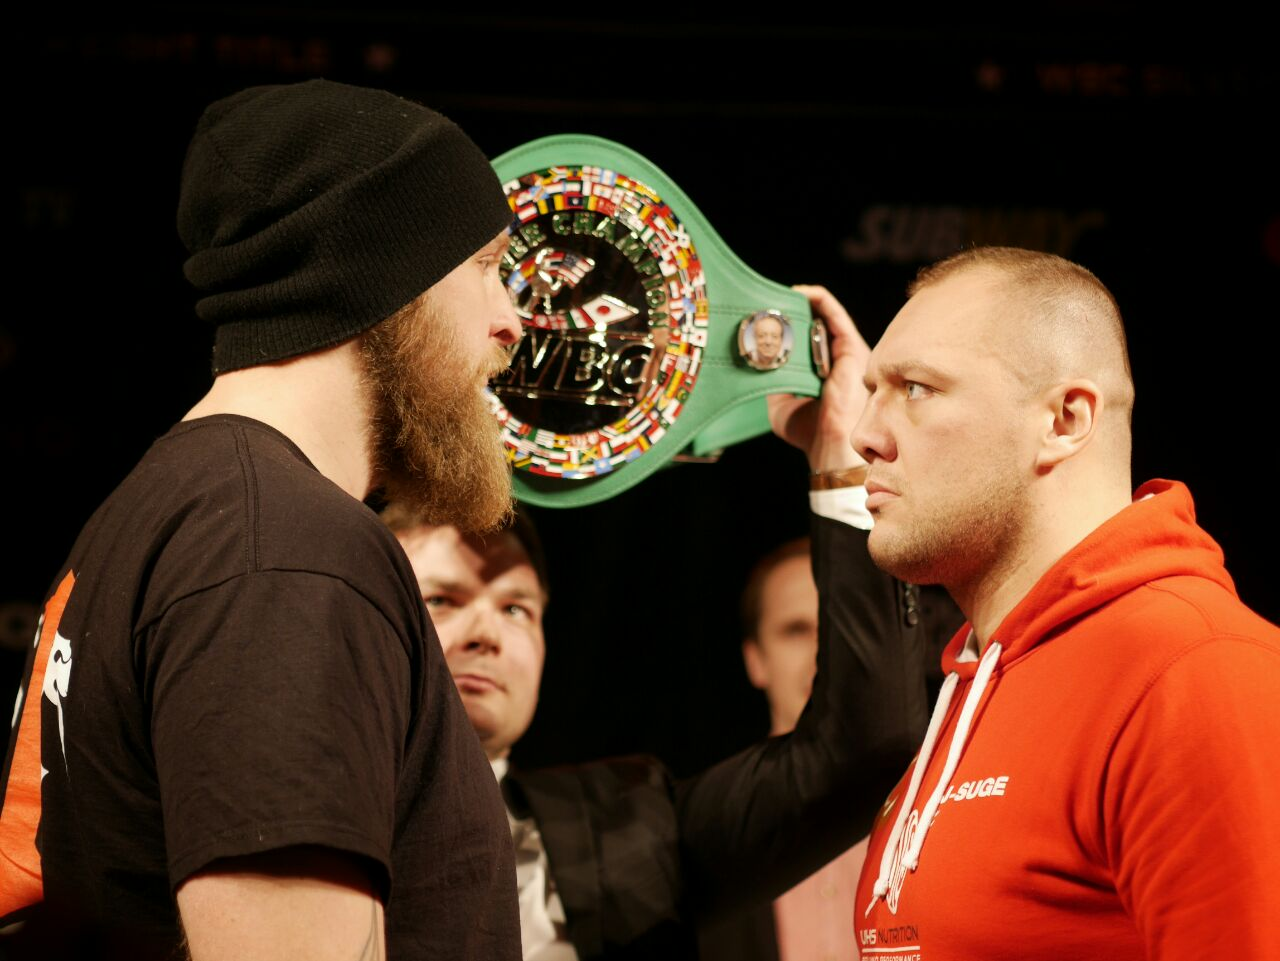 Robert Helenius and Johann Duhaupas face each other during an intense staredown at Casino Helsinki on Friday March 4 2016. Picture: Morgan Walker for Finland Today